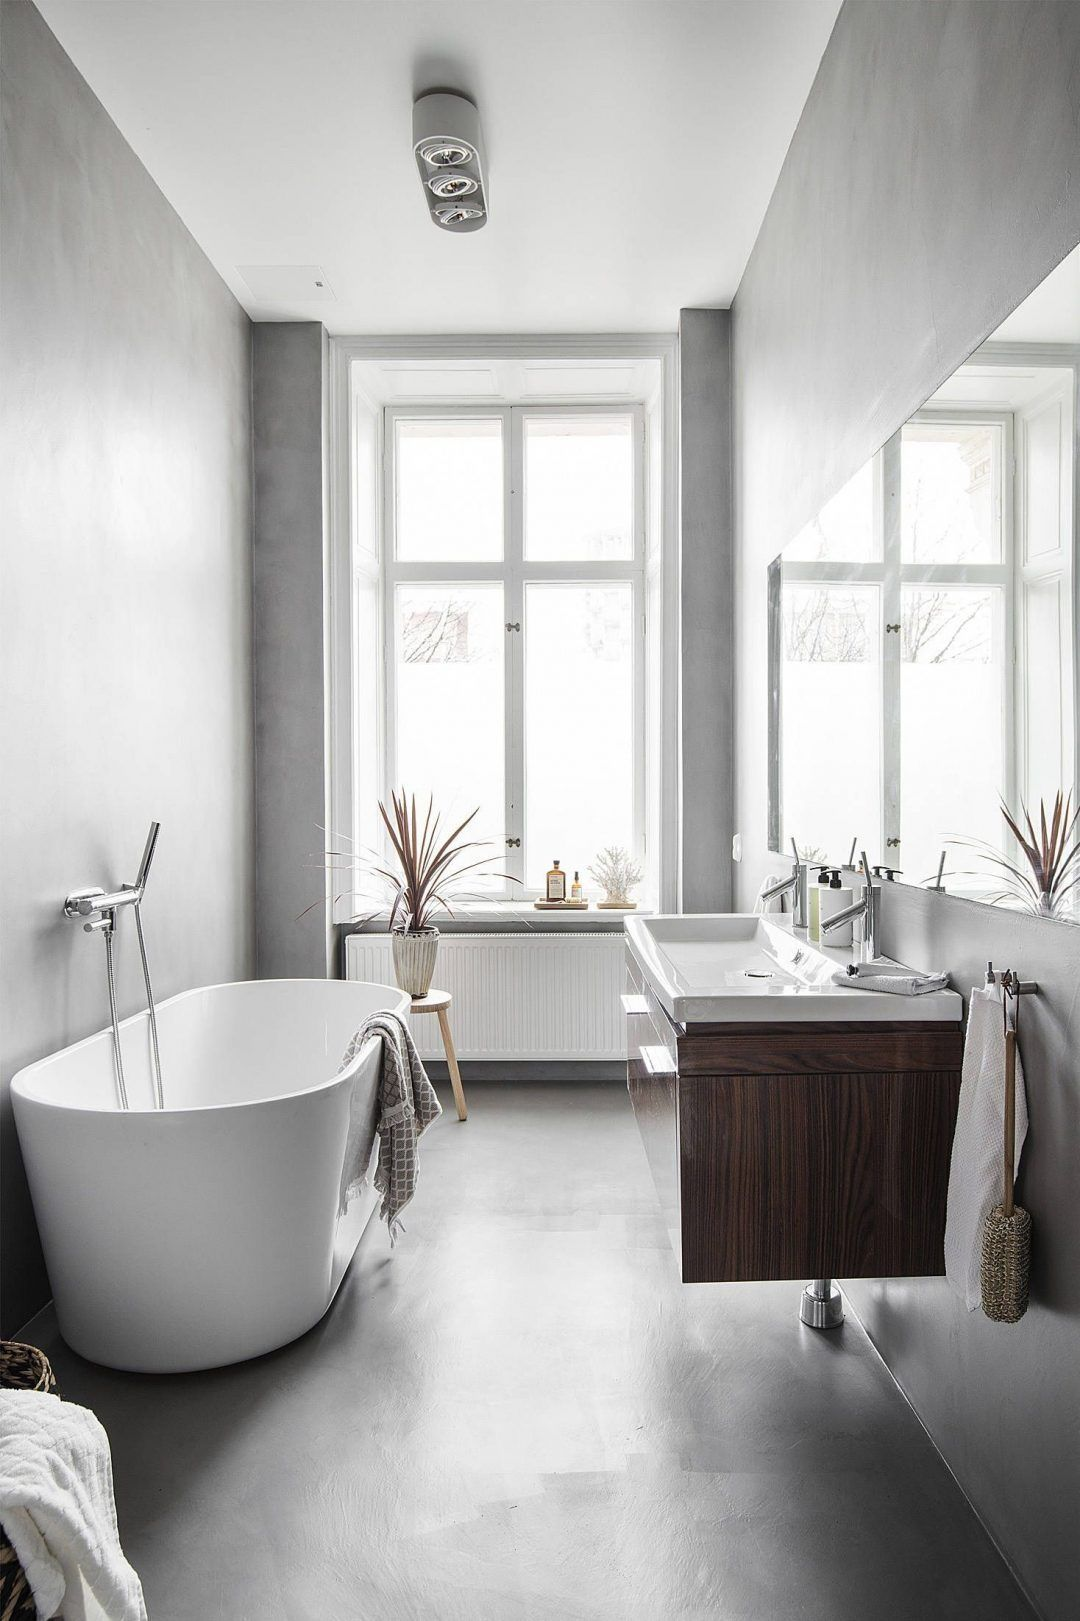 25 Tranquil Scandinavian Bathroom Decor To Get Rid Of Daily Stress - N8